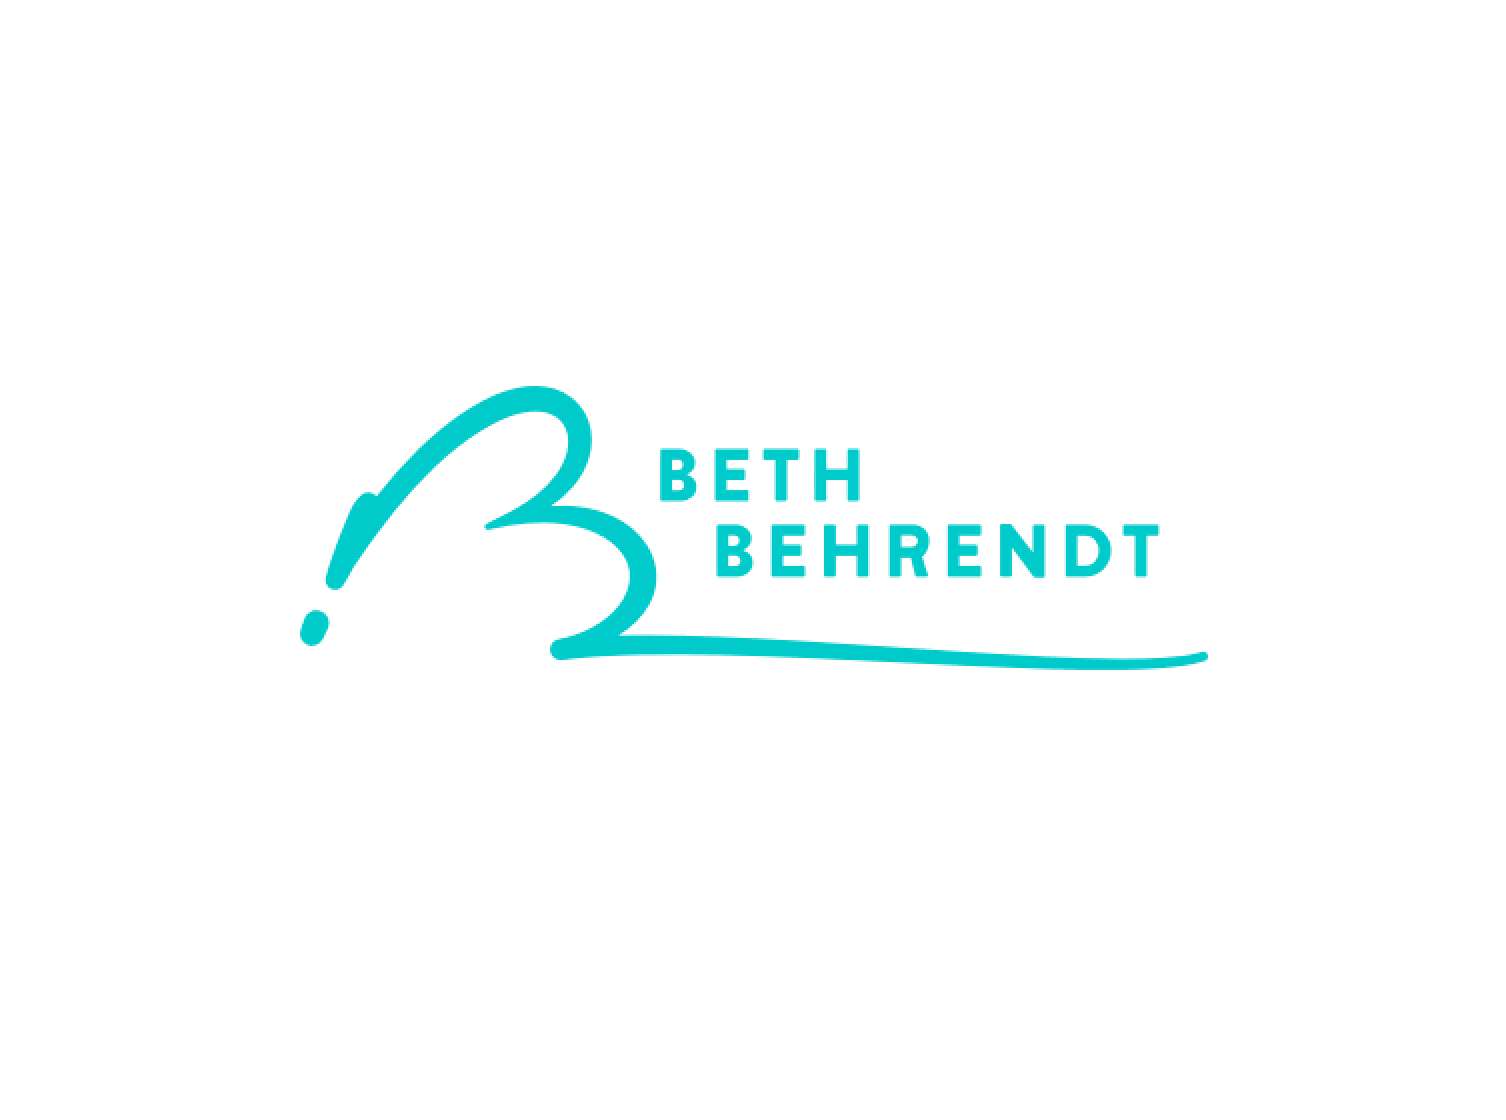 Beth Behrendt - Bird Nesting Family Guru - Divorce Altermative_ Logo@2x